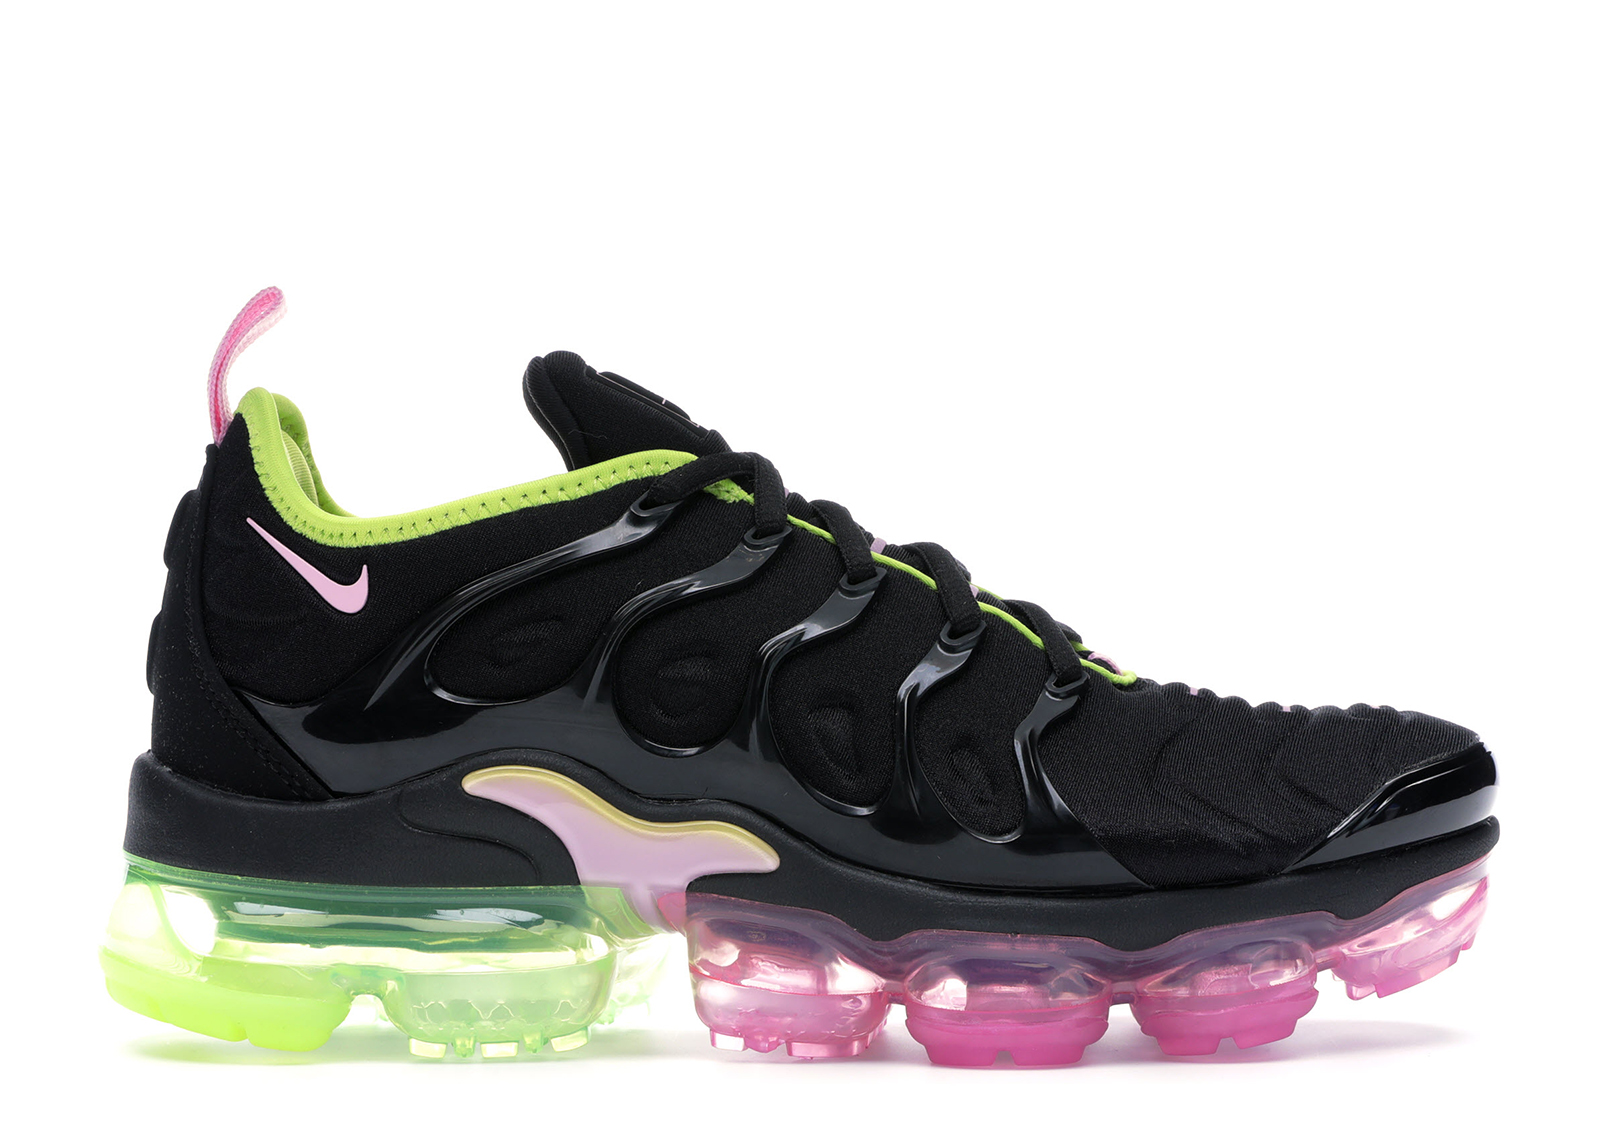 Black And Pink Nike Vapormax Flash Sales, UP TO 55% OFF